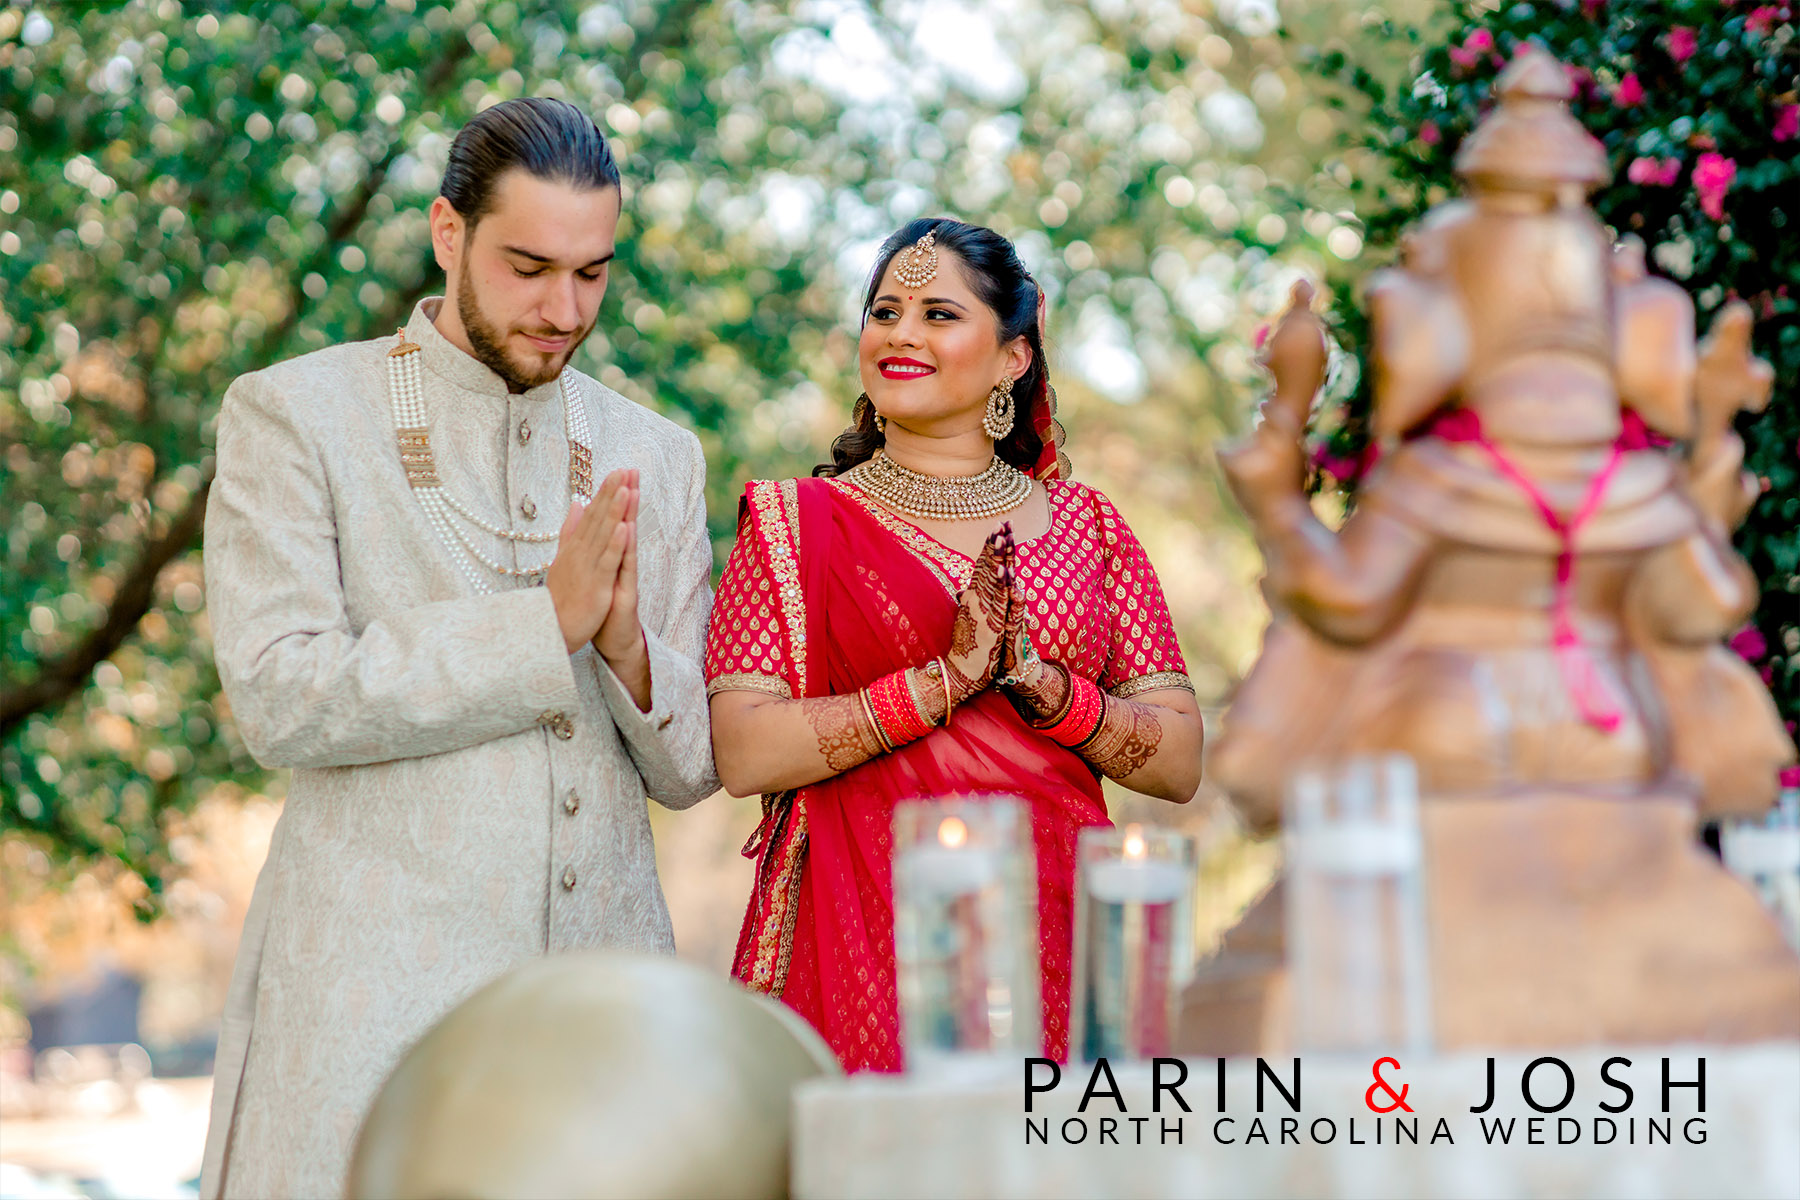 Parin & Josh | Raleigh, North Carolina Indian Wedding |